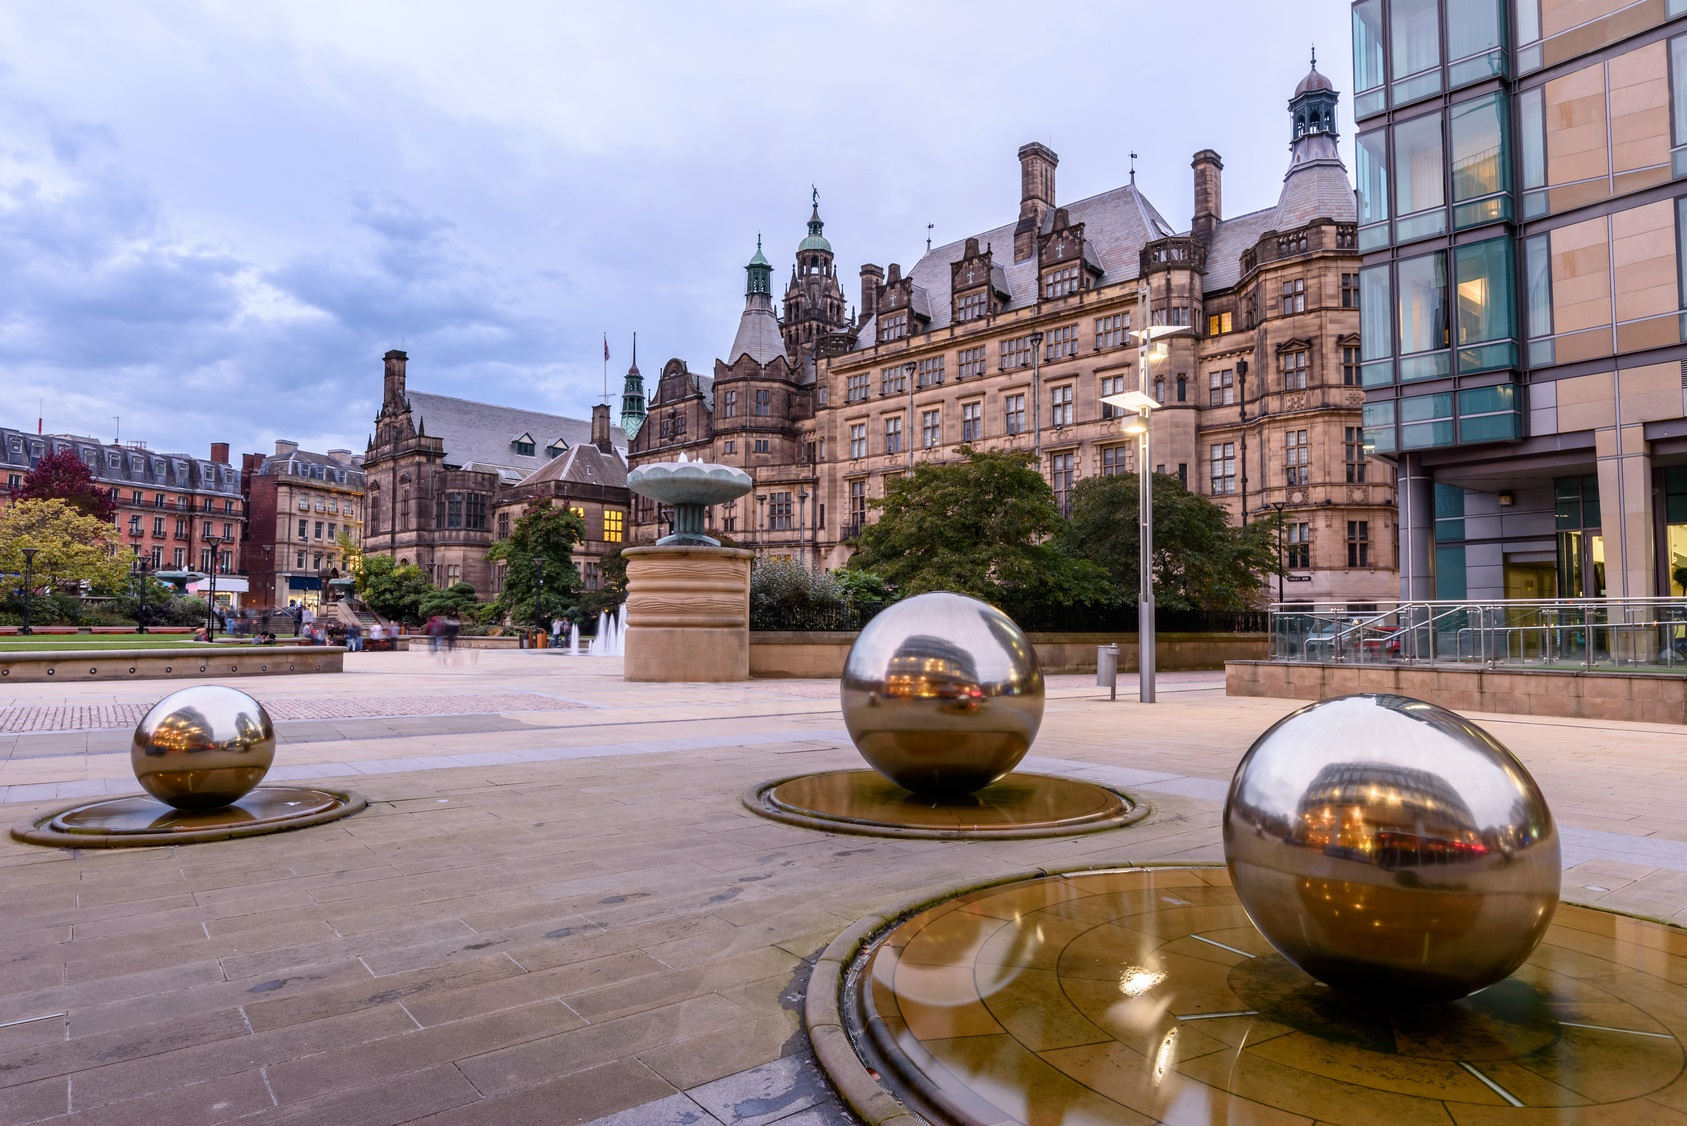 Millennium Square is a modern city square in Sheffield, England